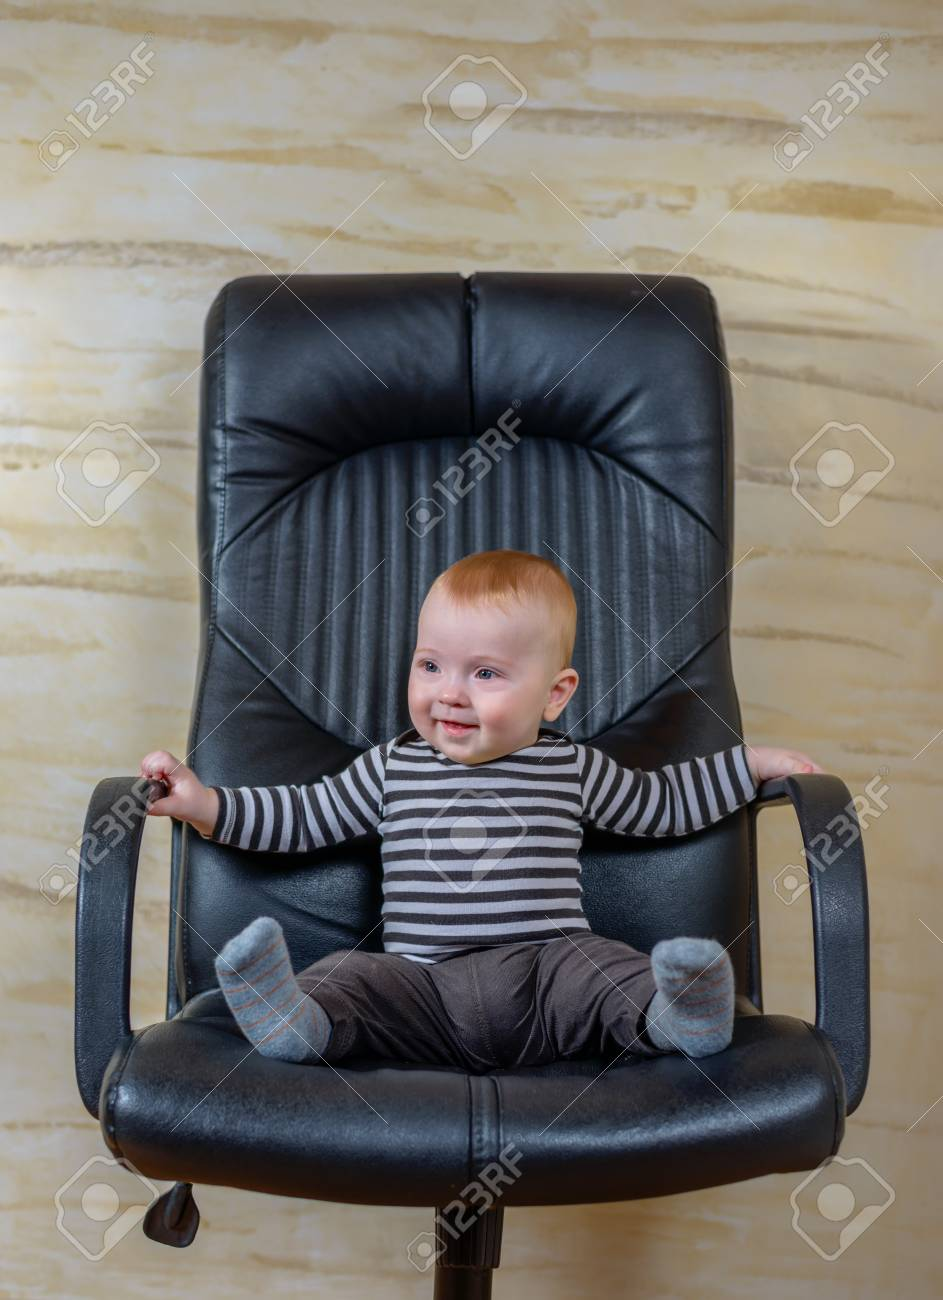 Awe Inspiring Cute Baby Boy Sitting On Black Office Chair And Looking Away Interior Design Ideas Apansoteloinfo